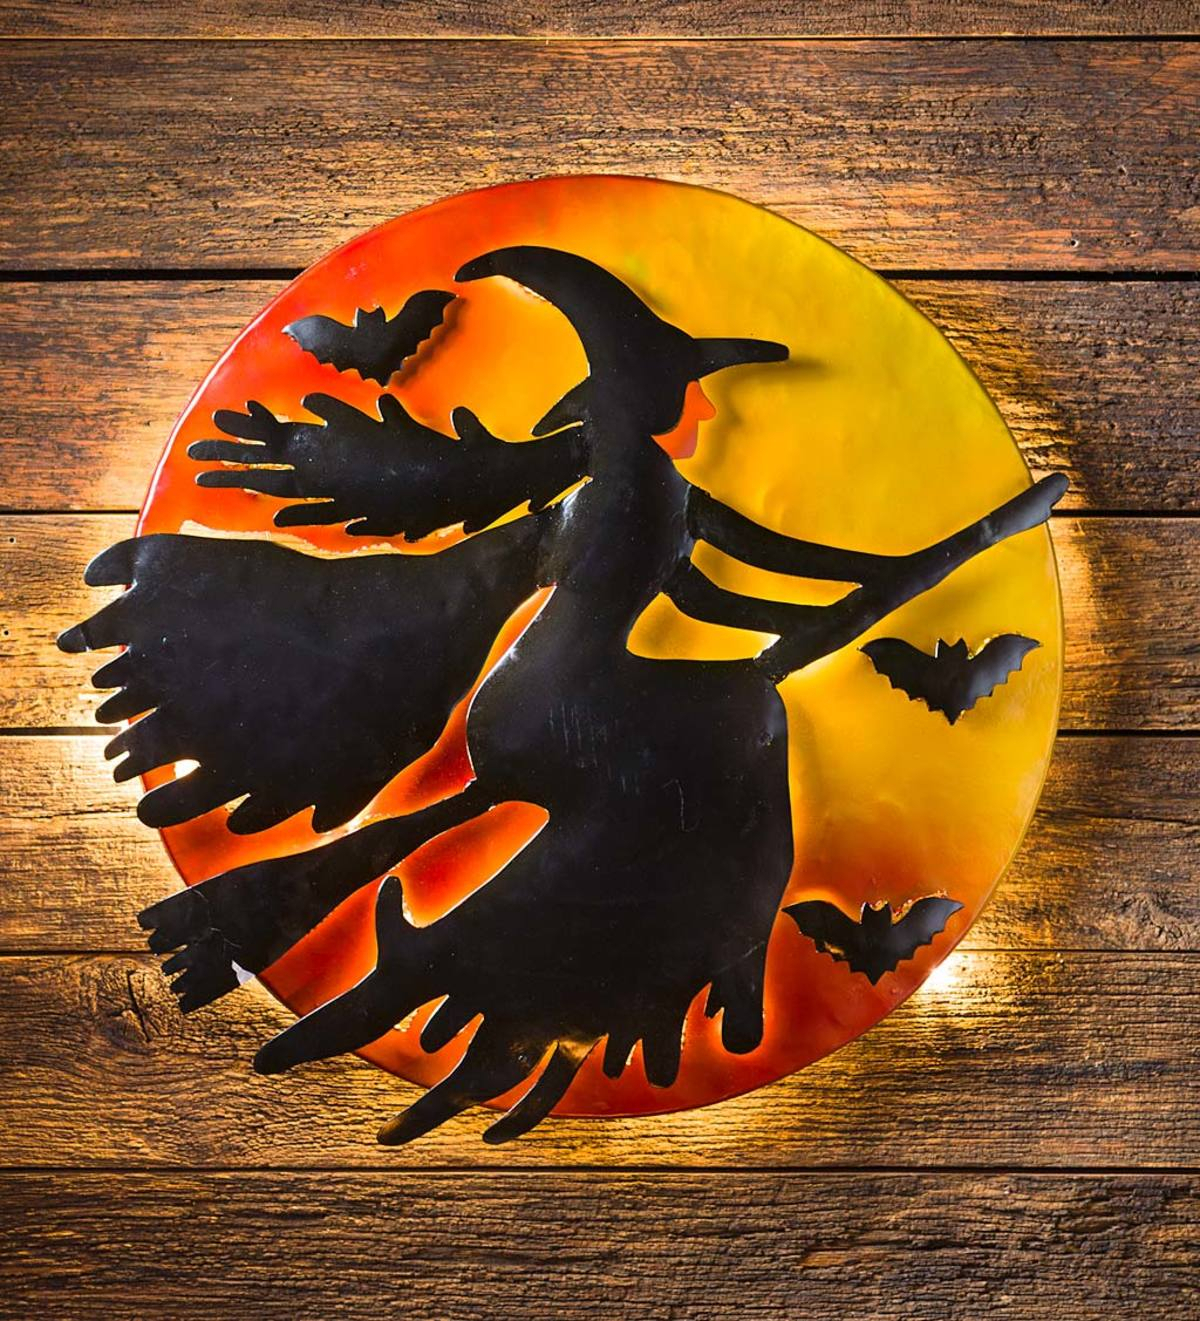 3d Lighted Flying Witch Recycled Oil Drum Lid Wall Art Inside Recycled Moon And Sun Wall Decor (View 18 of 30)